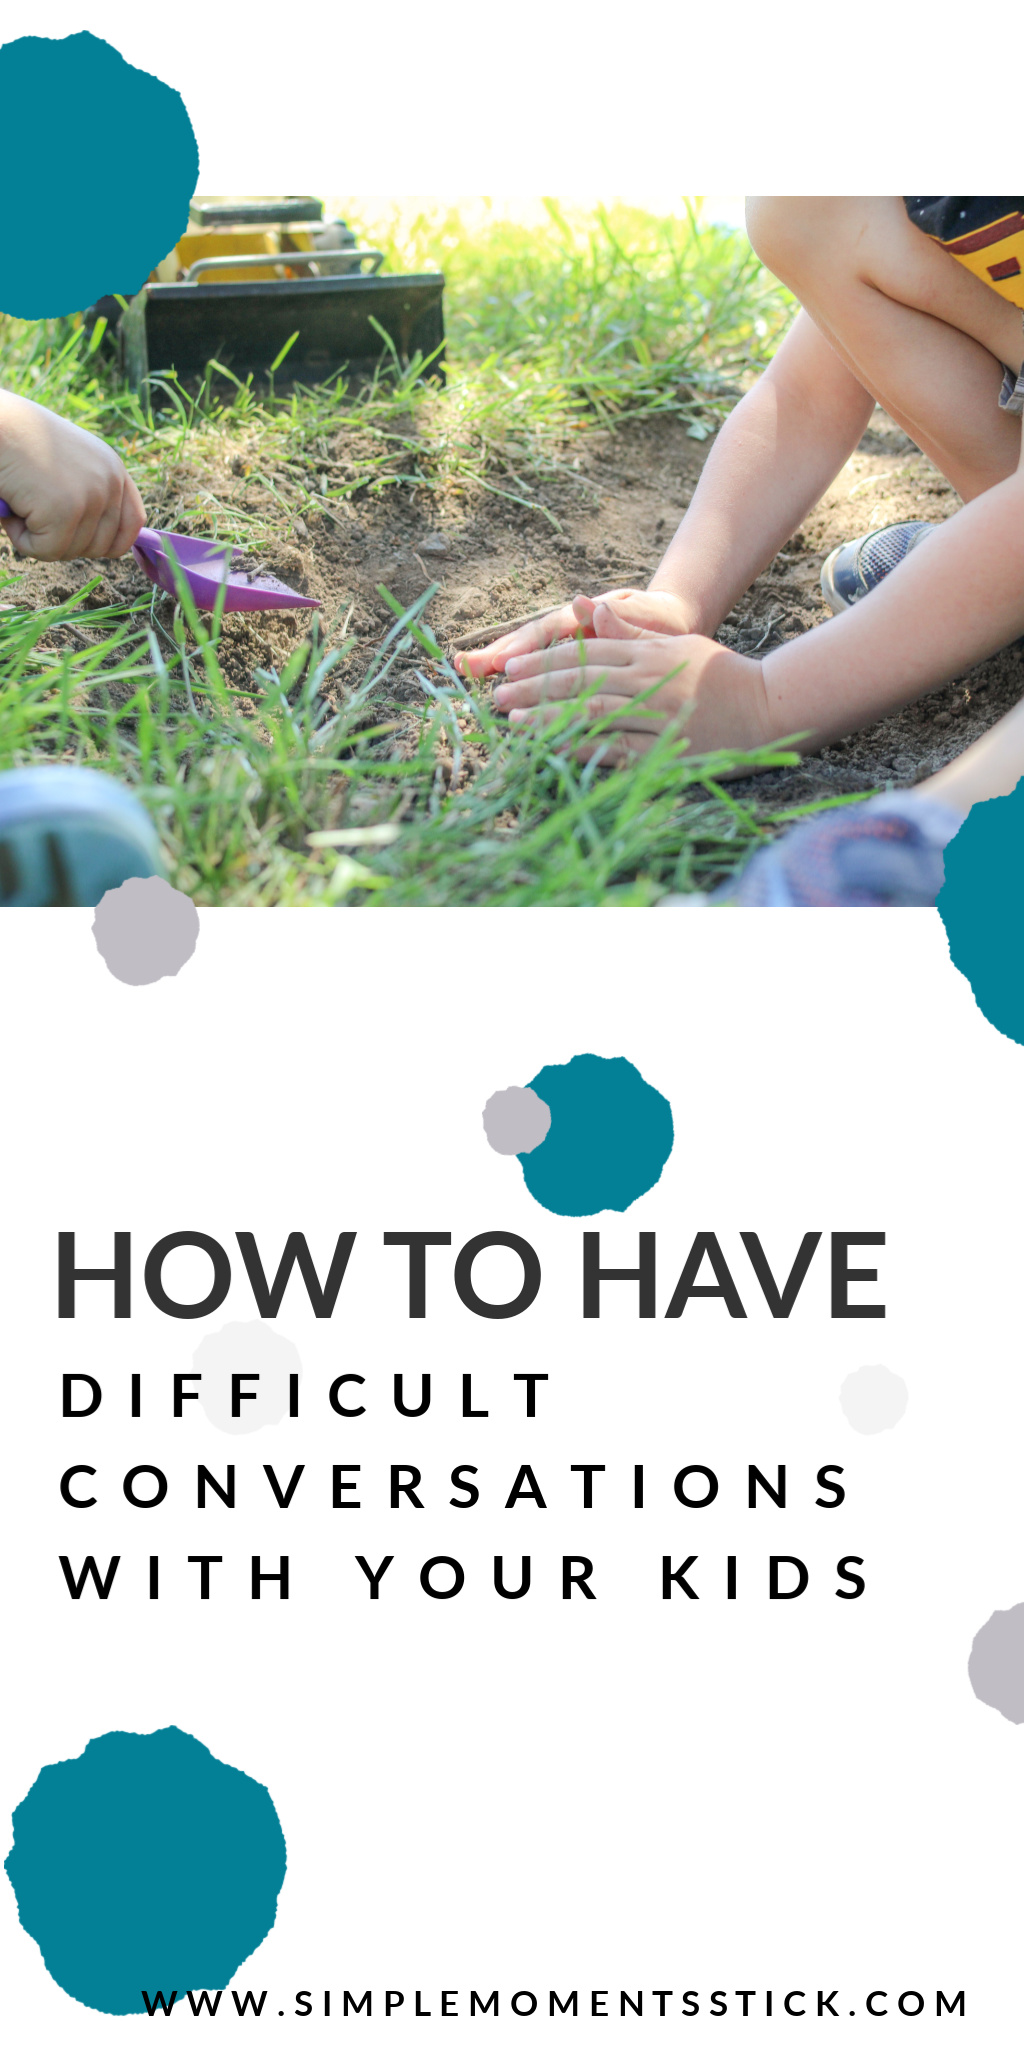 How to talk to your child about difficult topics